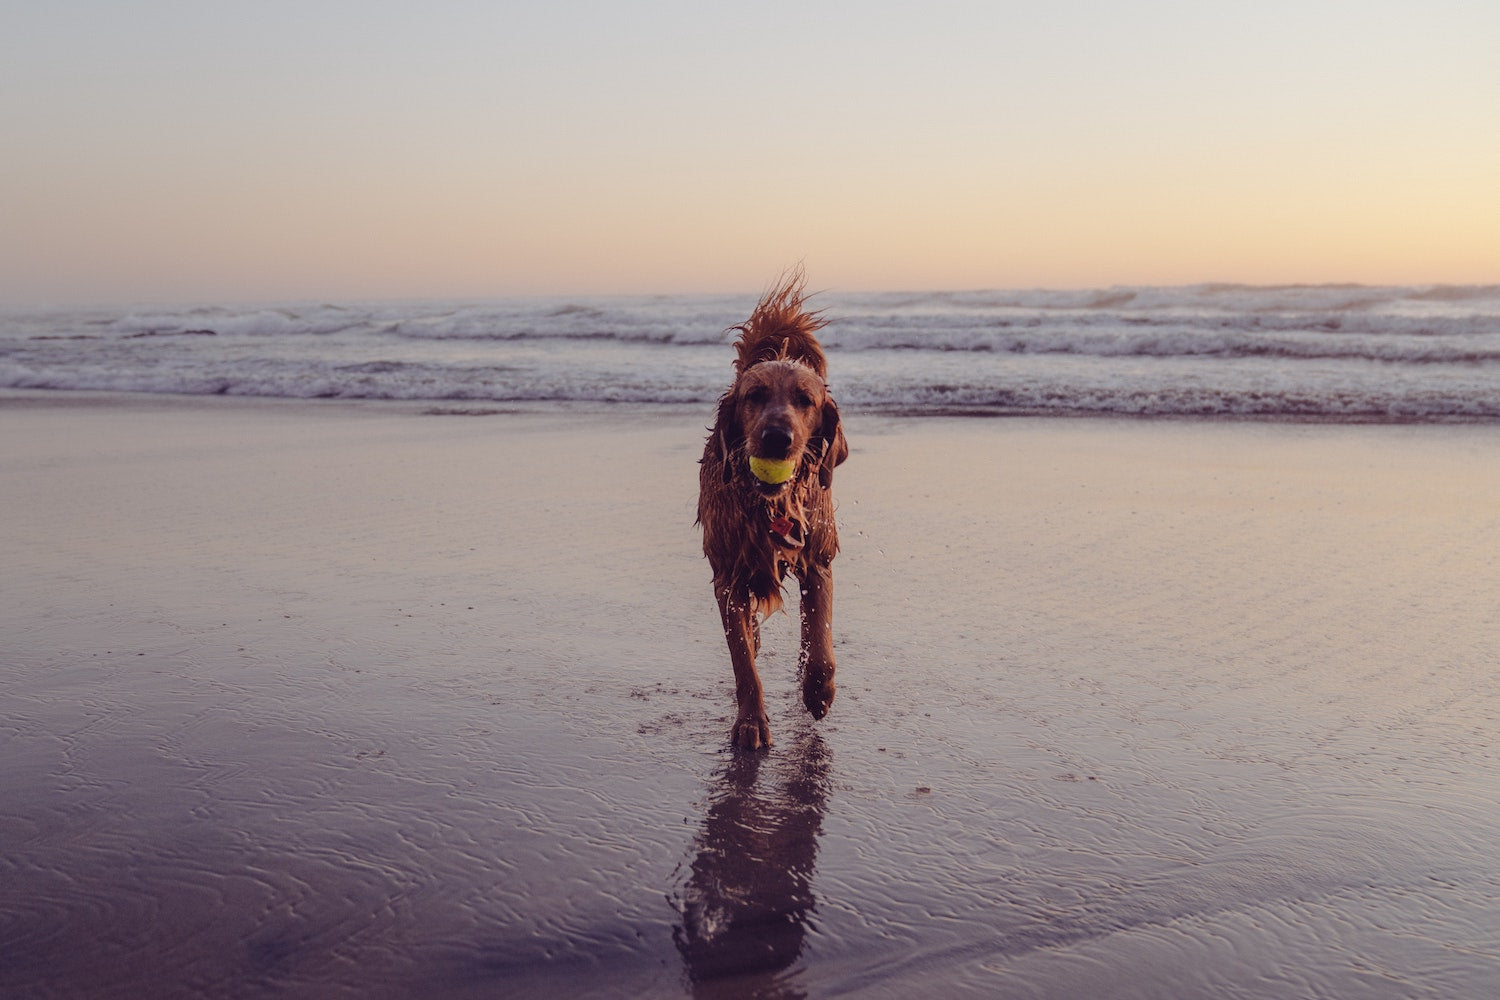 A dog playing near the sea on the beach with their ball.